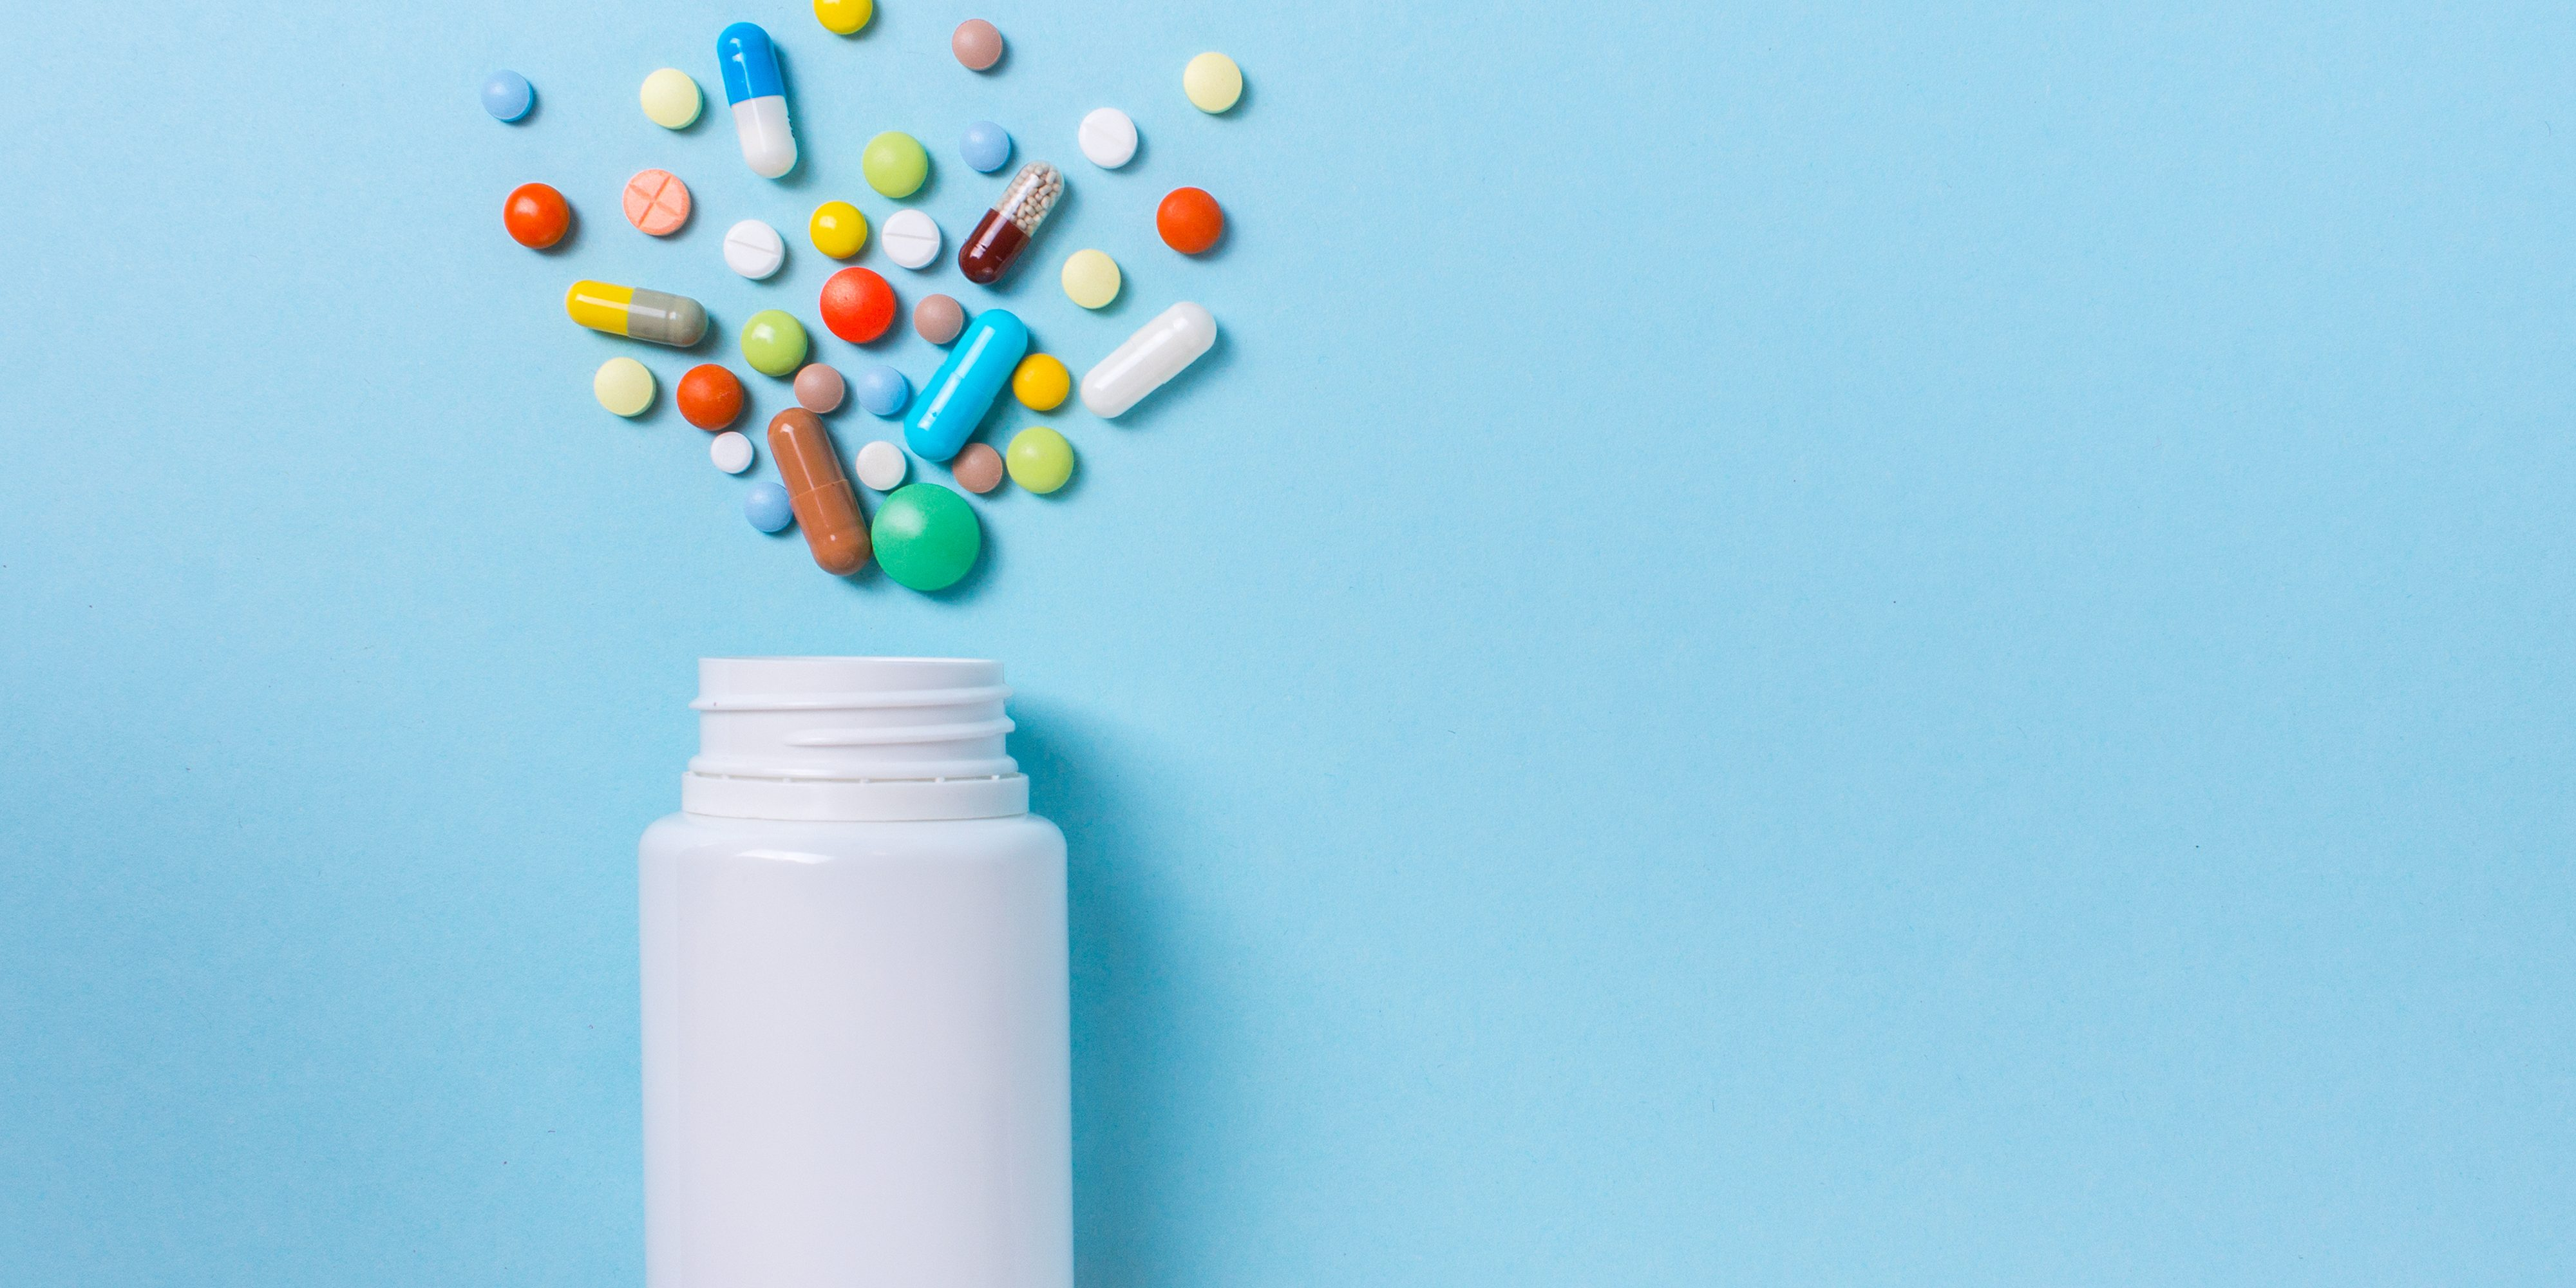 The first imported generic drug approved under China QCE